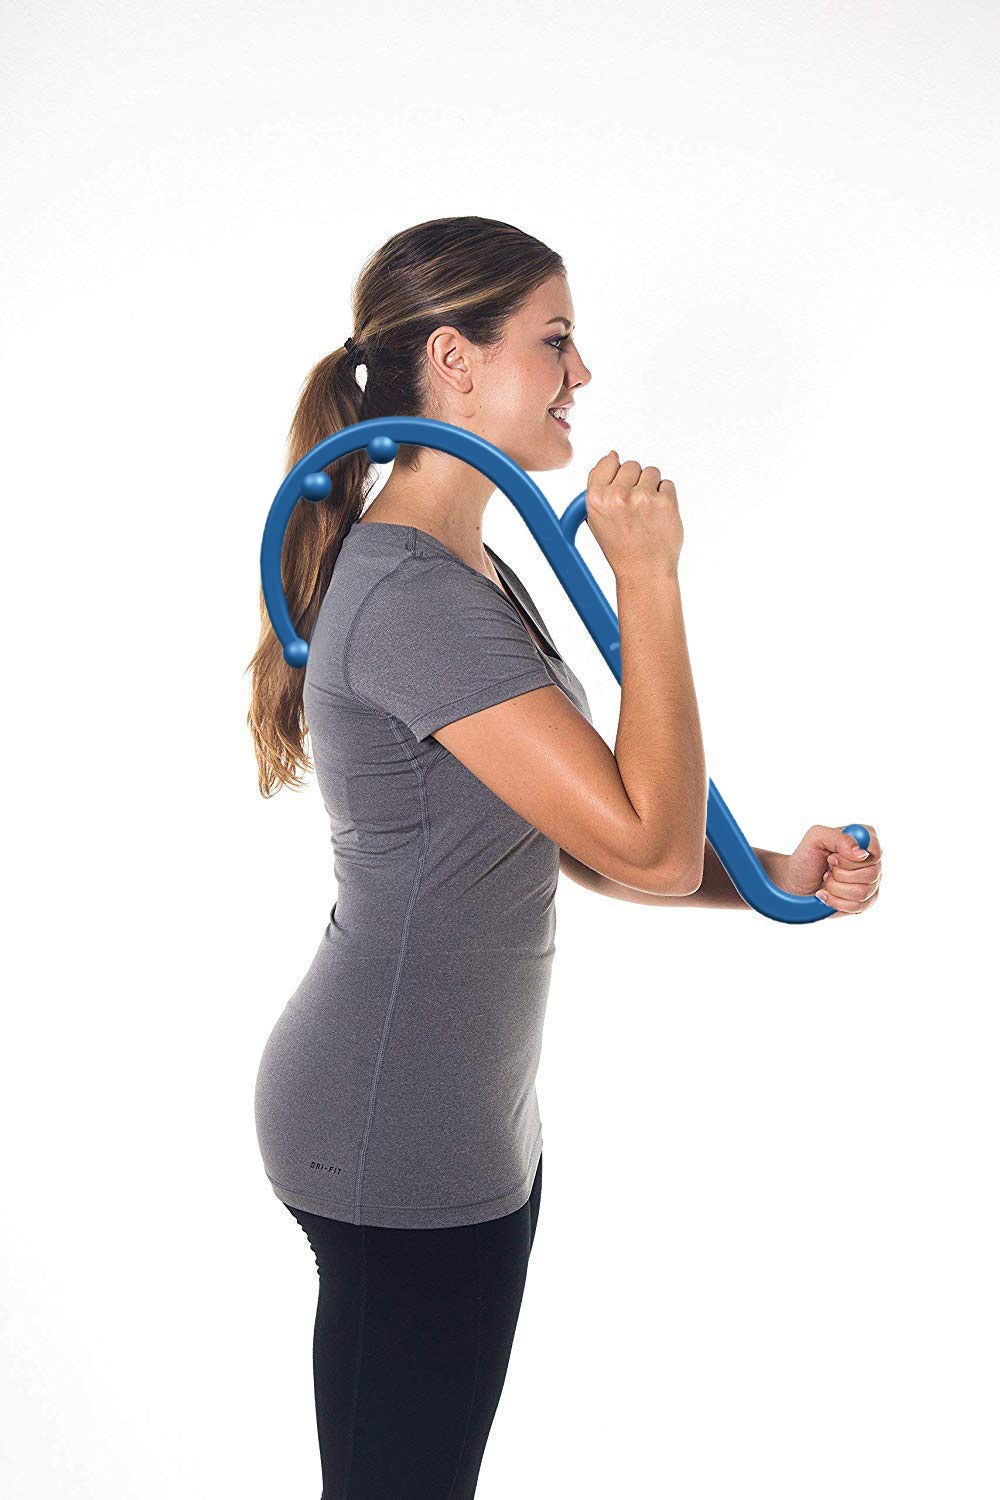 woman using a neck and back massager cane on upper back